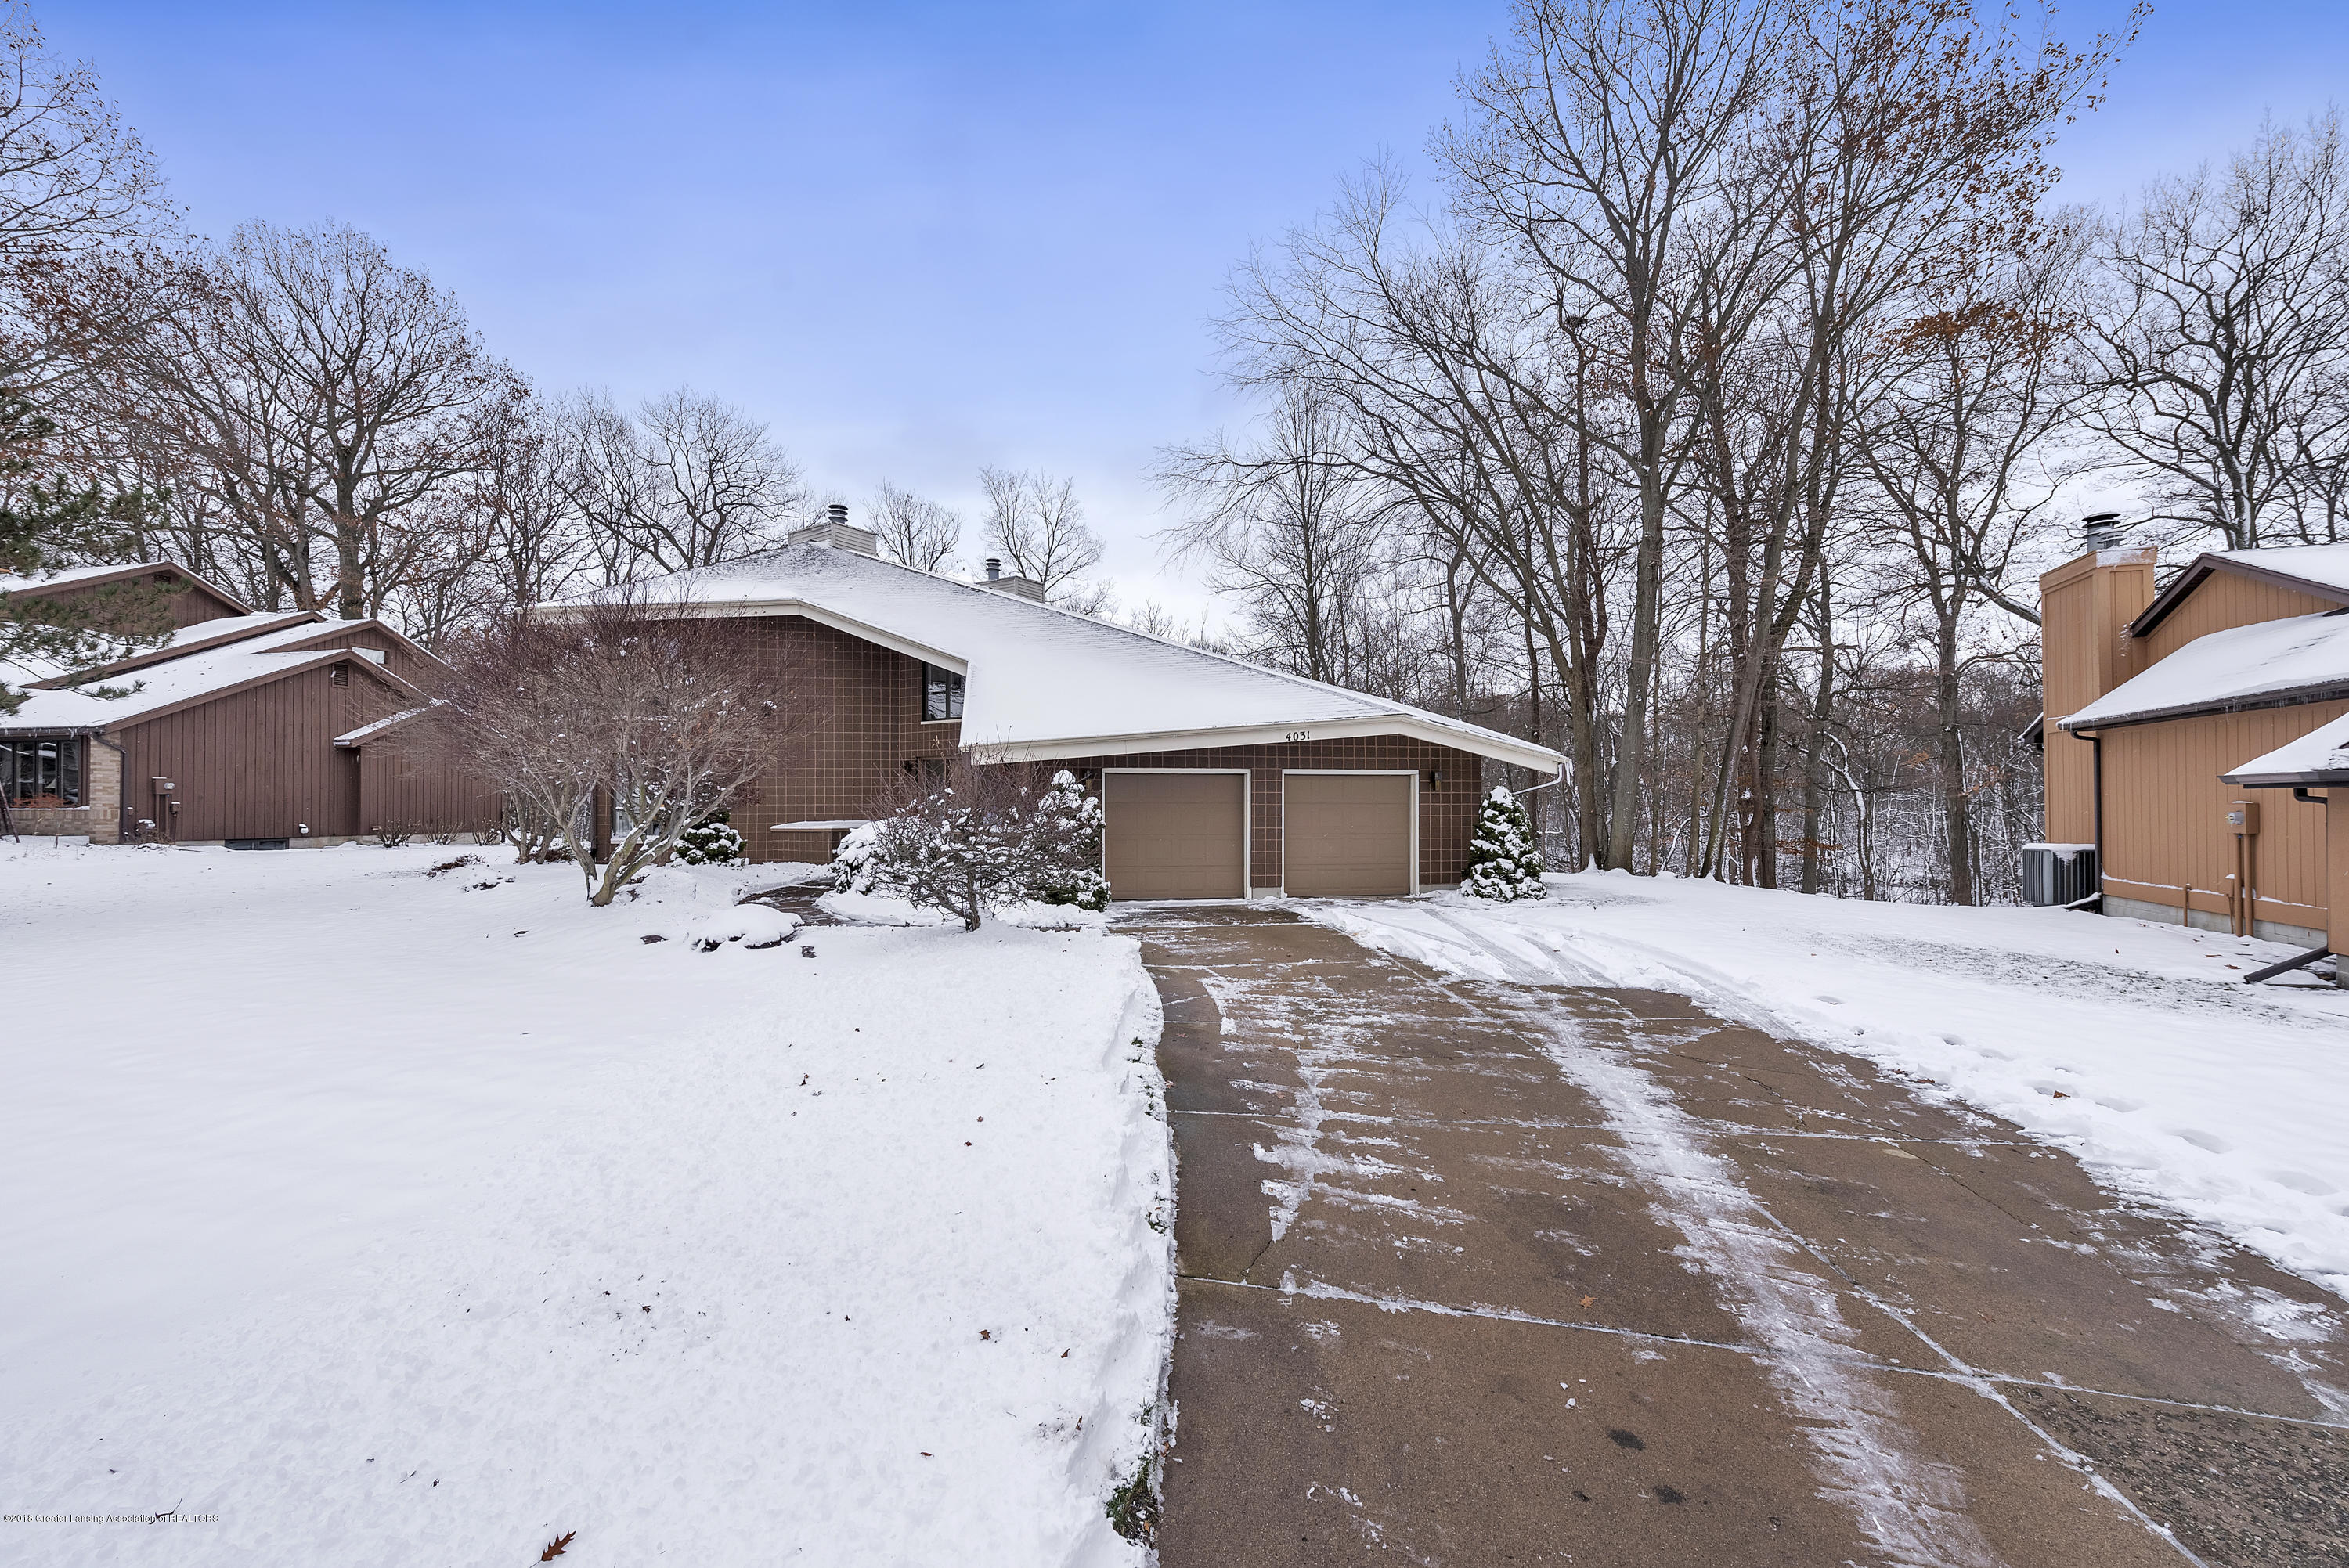 4031 Shoals Dr - 4031-Shoals-Drive-Okemos-MI-48864-window - 7